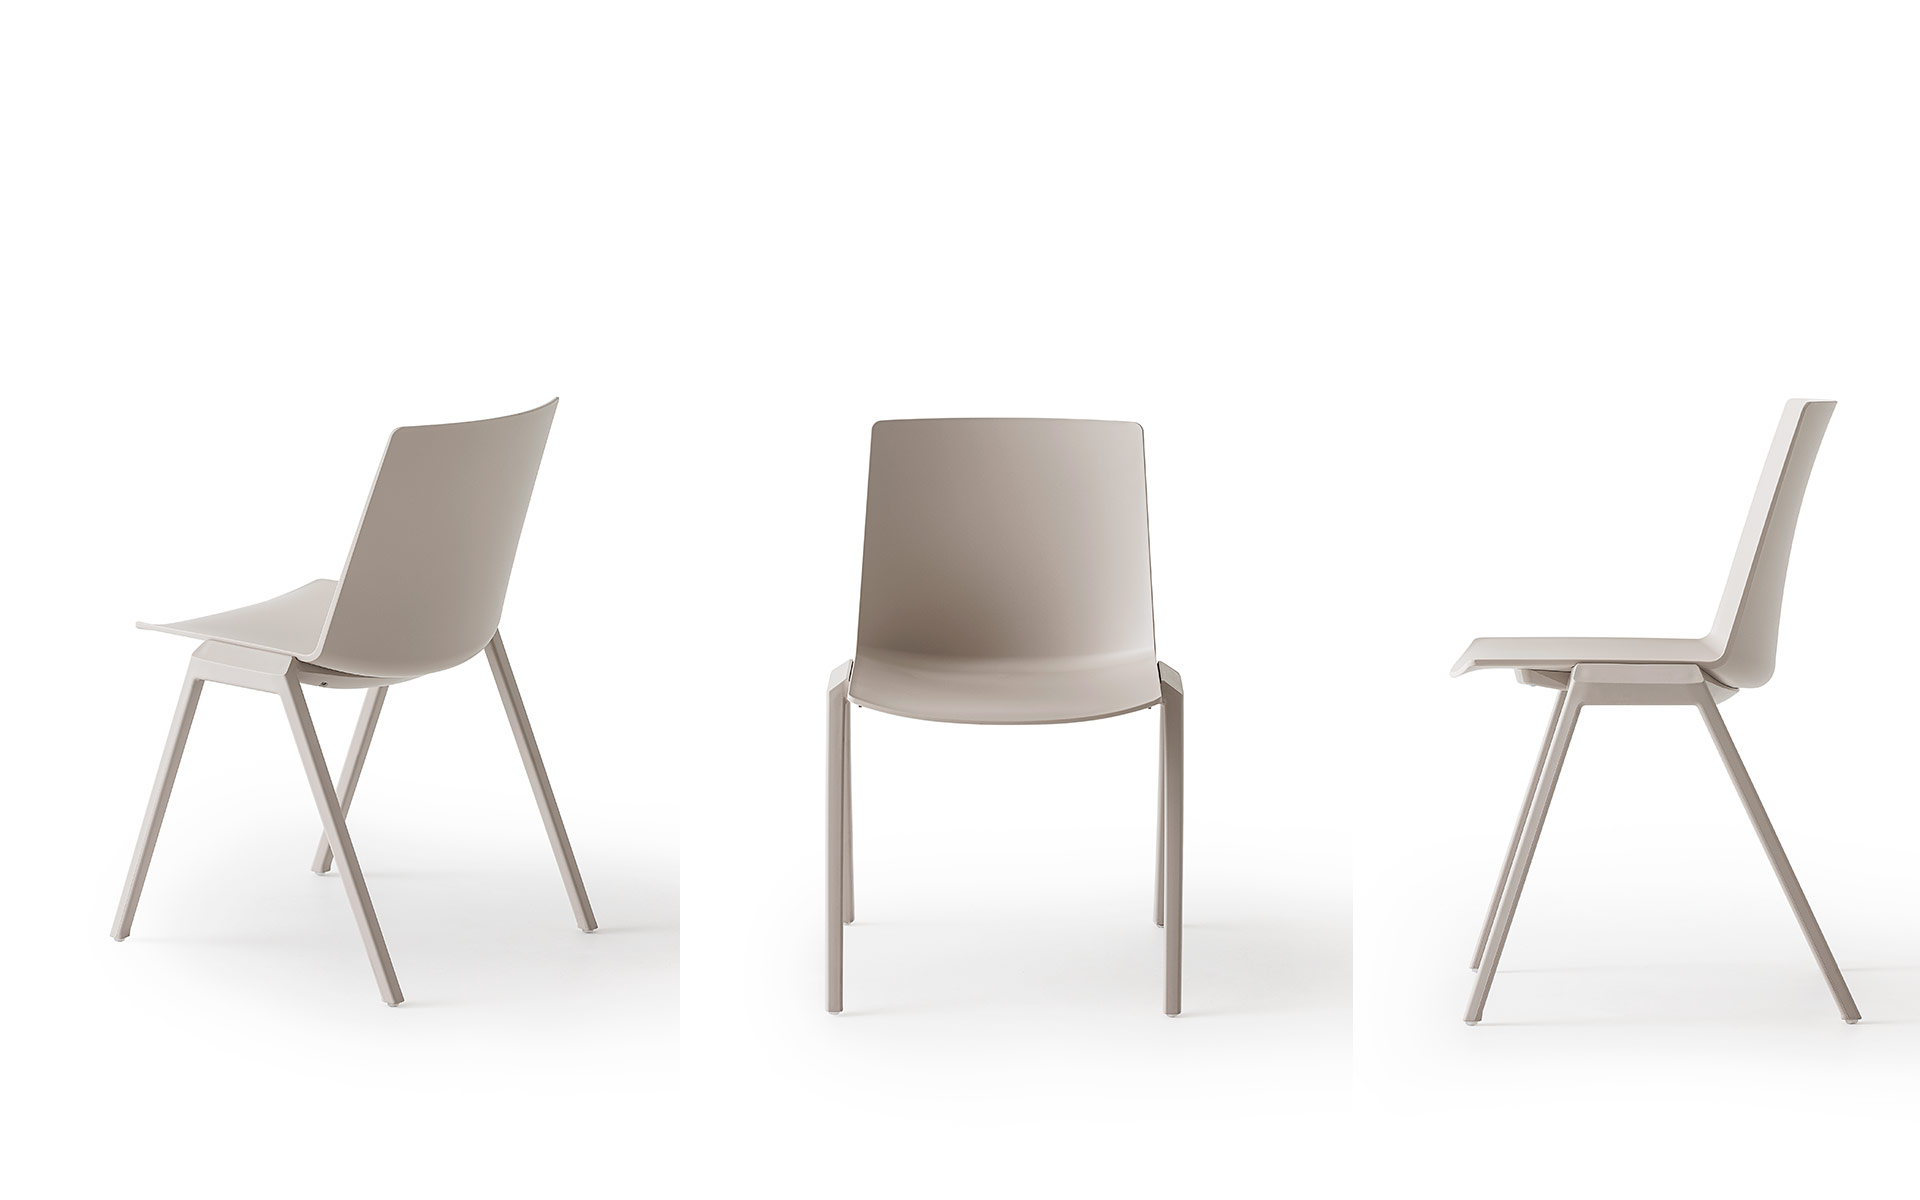 Joule Chairs